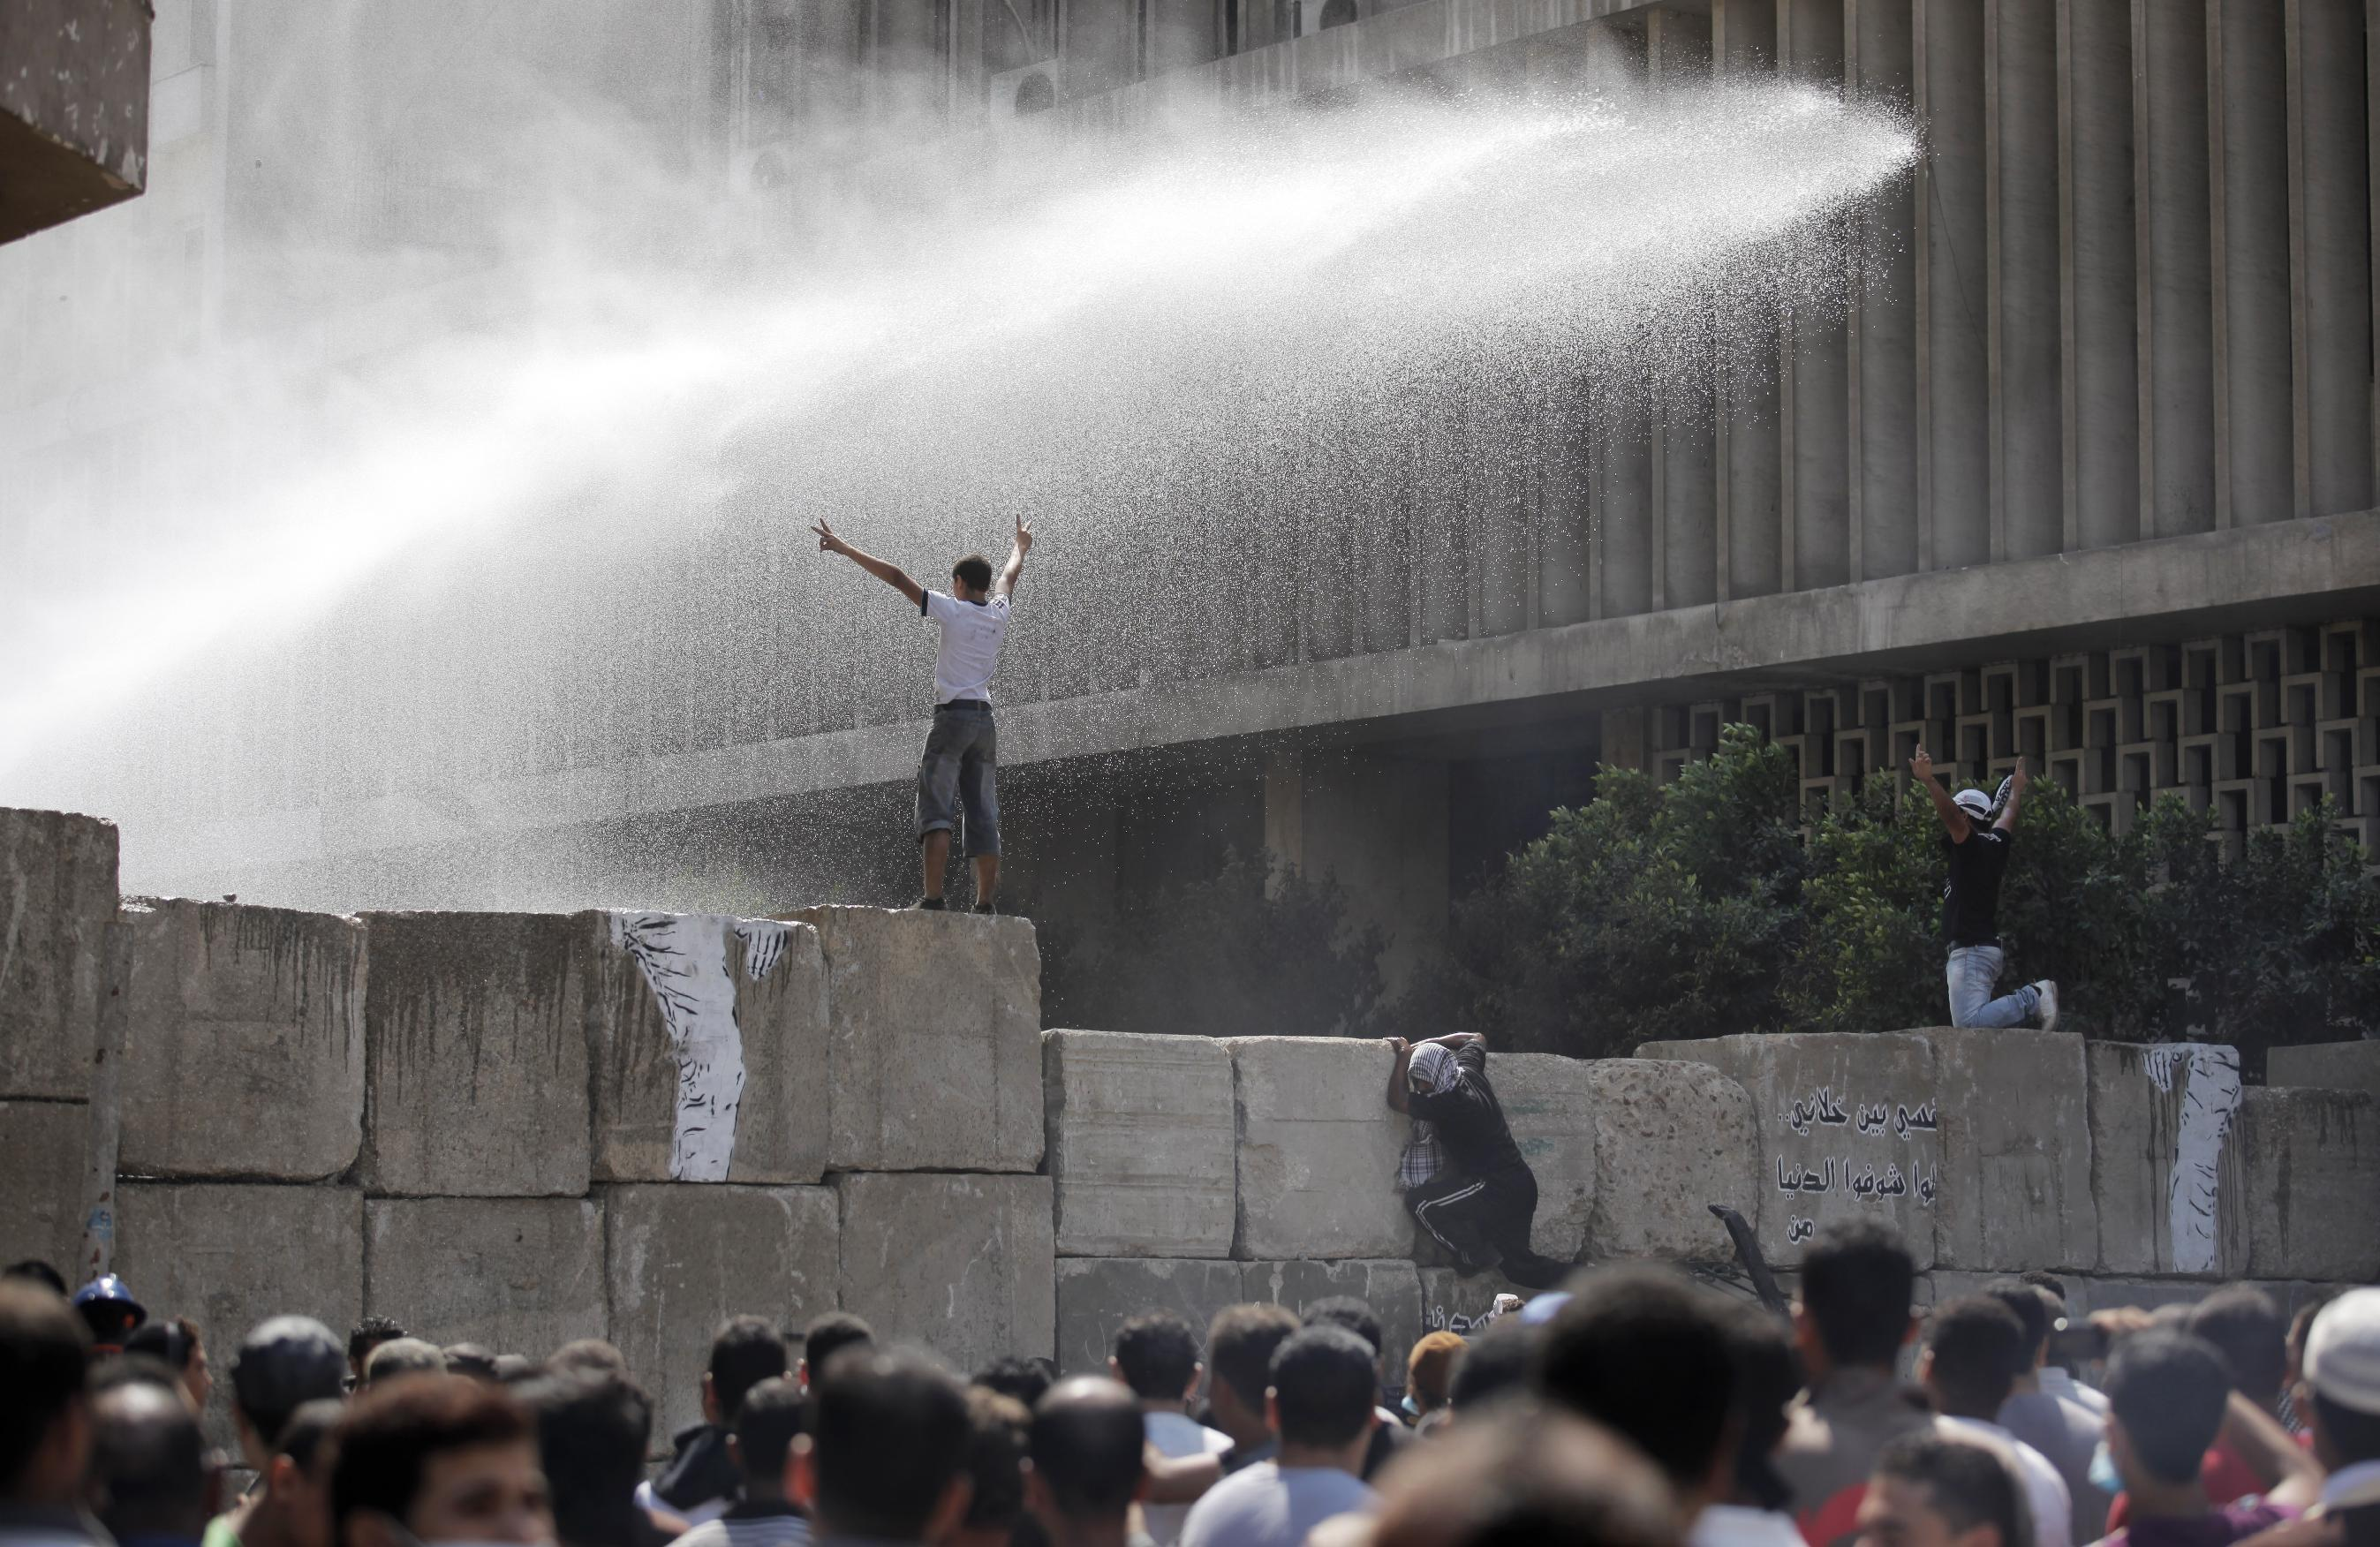 Egyptian security forces use water cannons against protesters, some climbing cement blocks that are used to close the street leading to the U.S. embassy, during clashes in Cairo, Egypt, Friday, Sept. 14, 2012, as part of widespread anger across the Muslim world about a film ridiculing Islam's Prophet Muhammad. (AP Photo/Nasser Nasser)